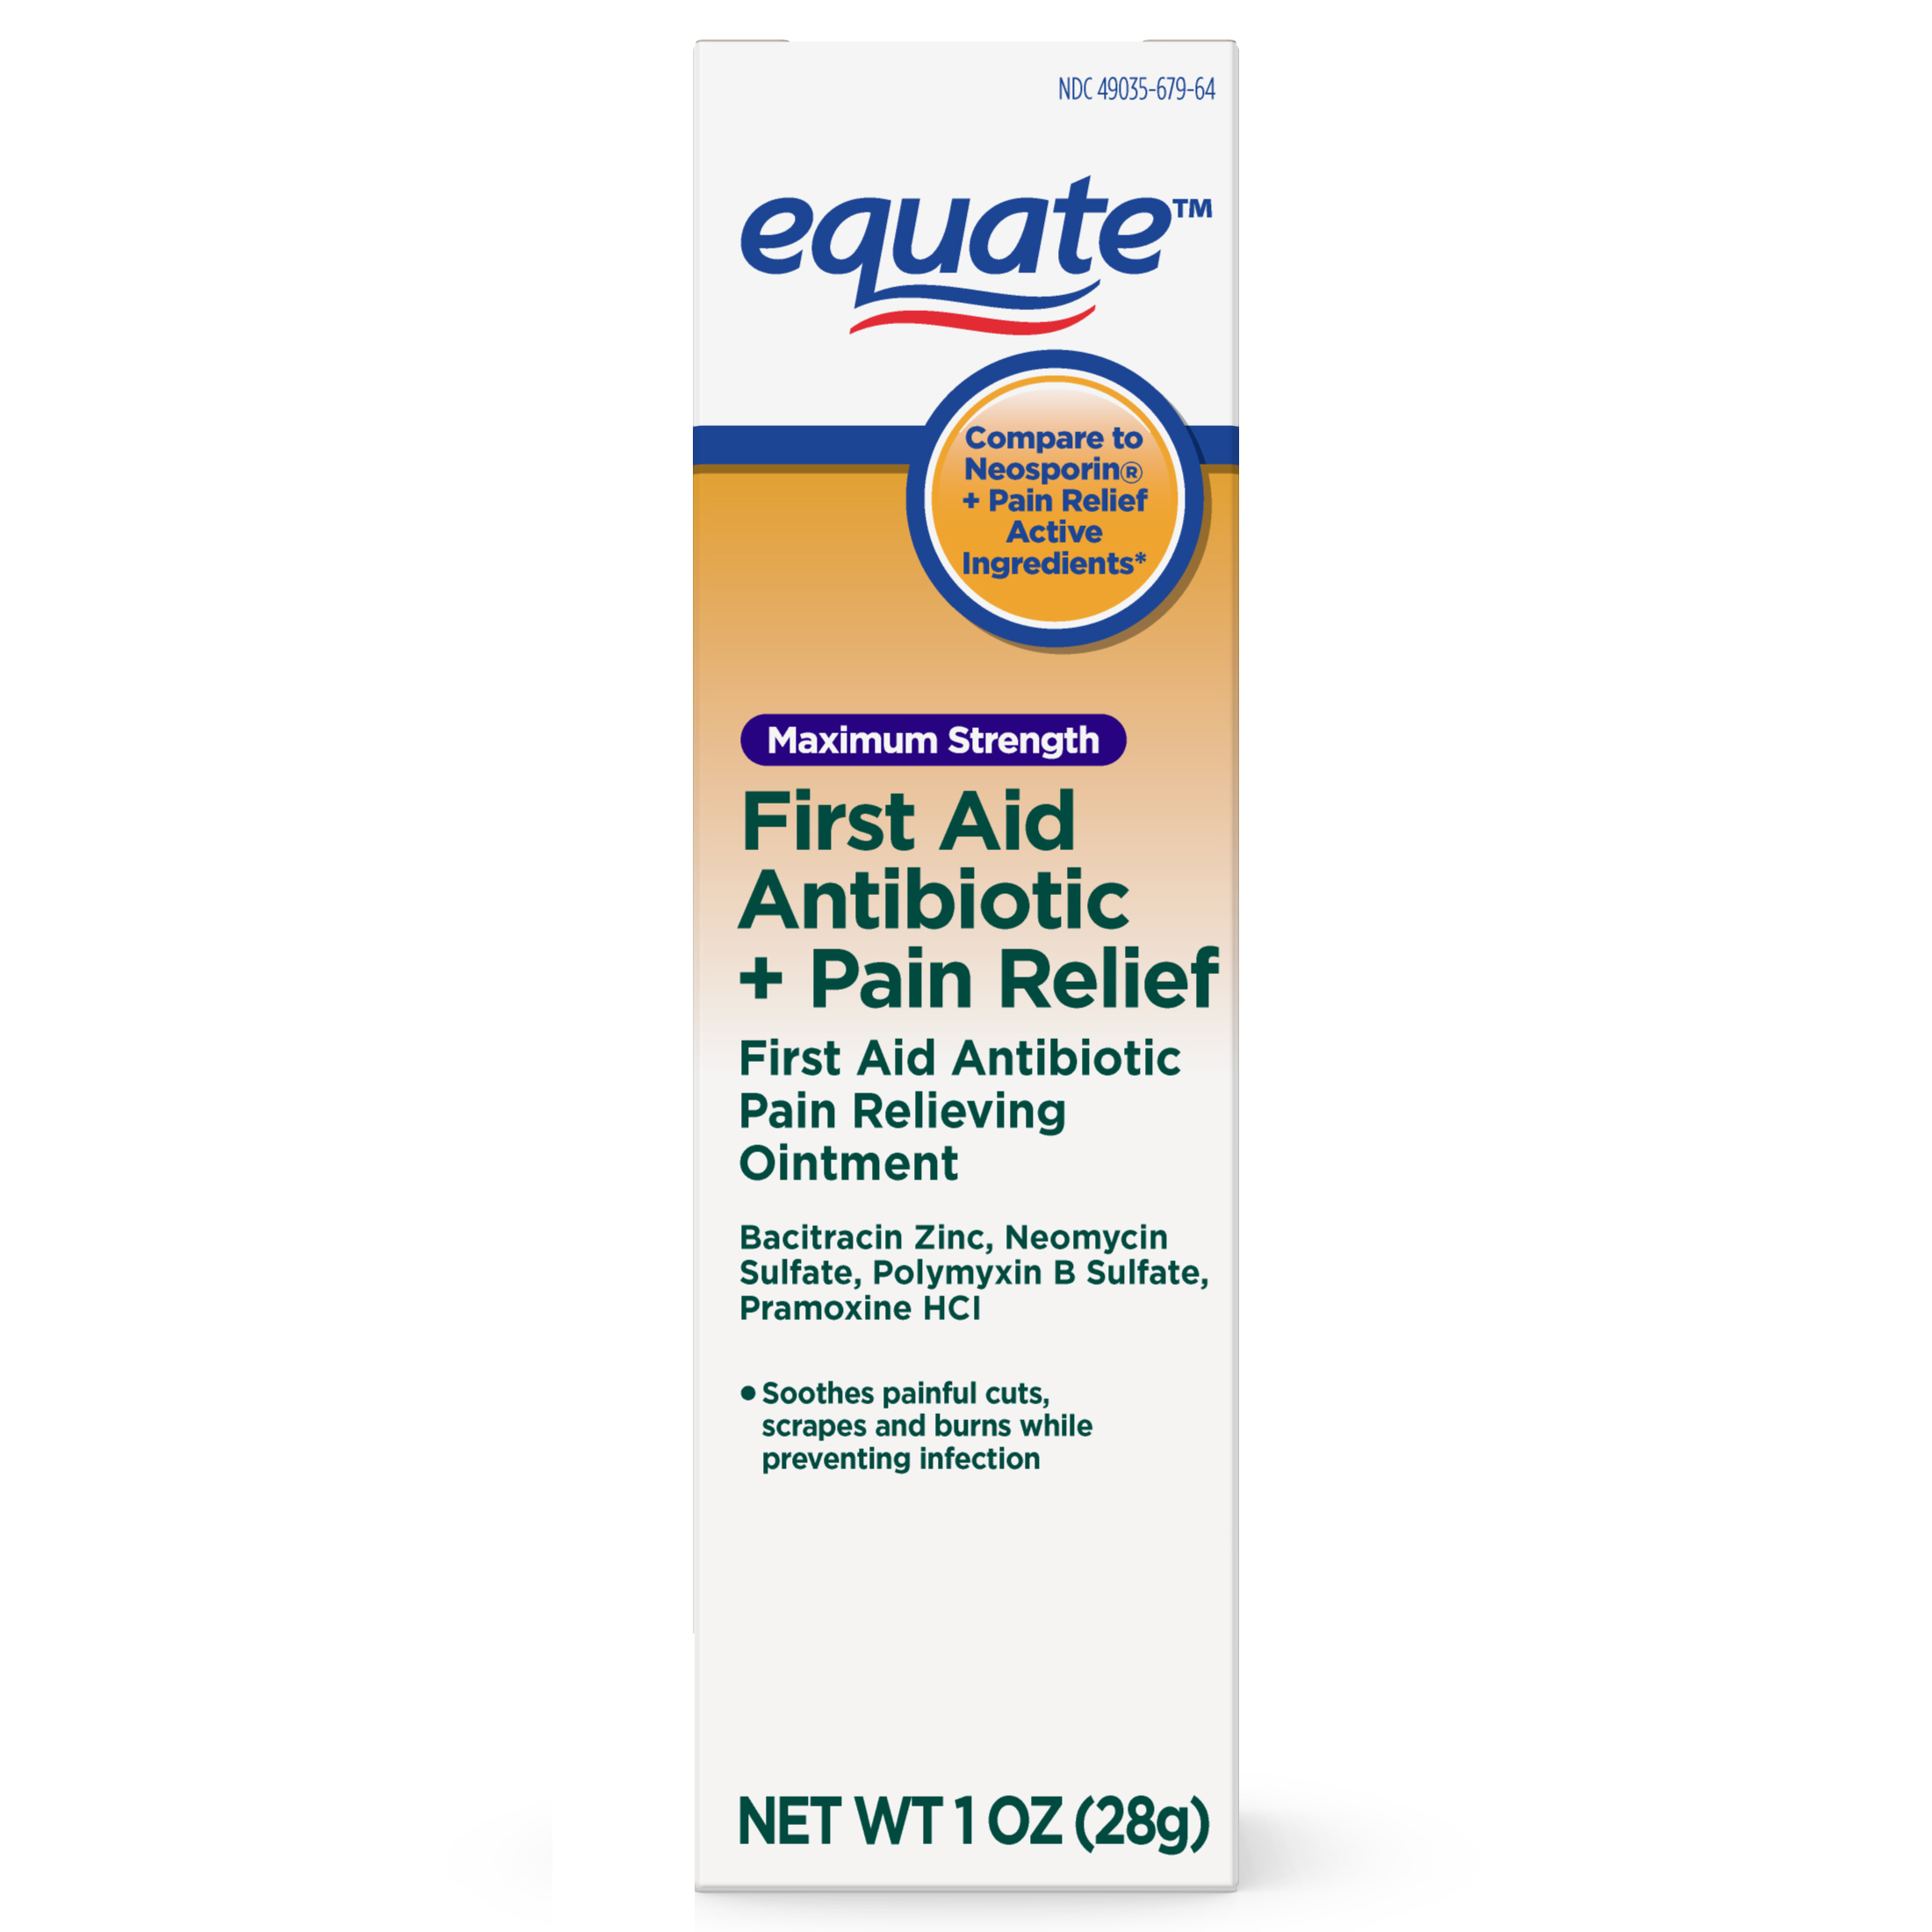 Equate Maximum Strength First Aid Antibiotic & Pain Relief Ointment, 1 Oz